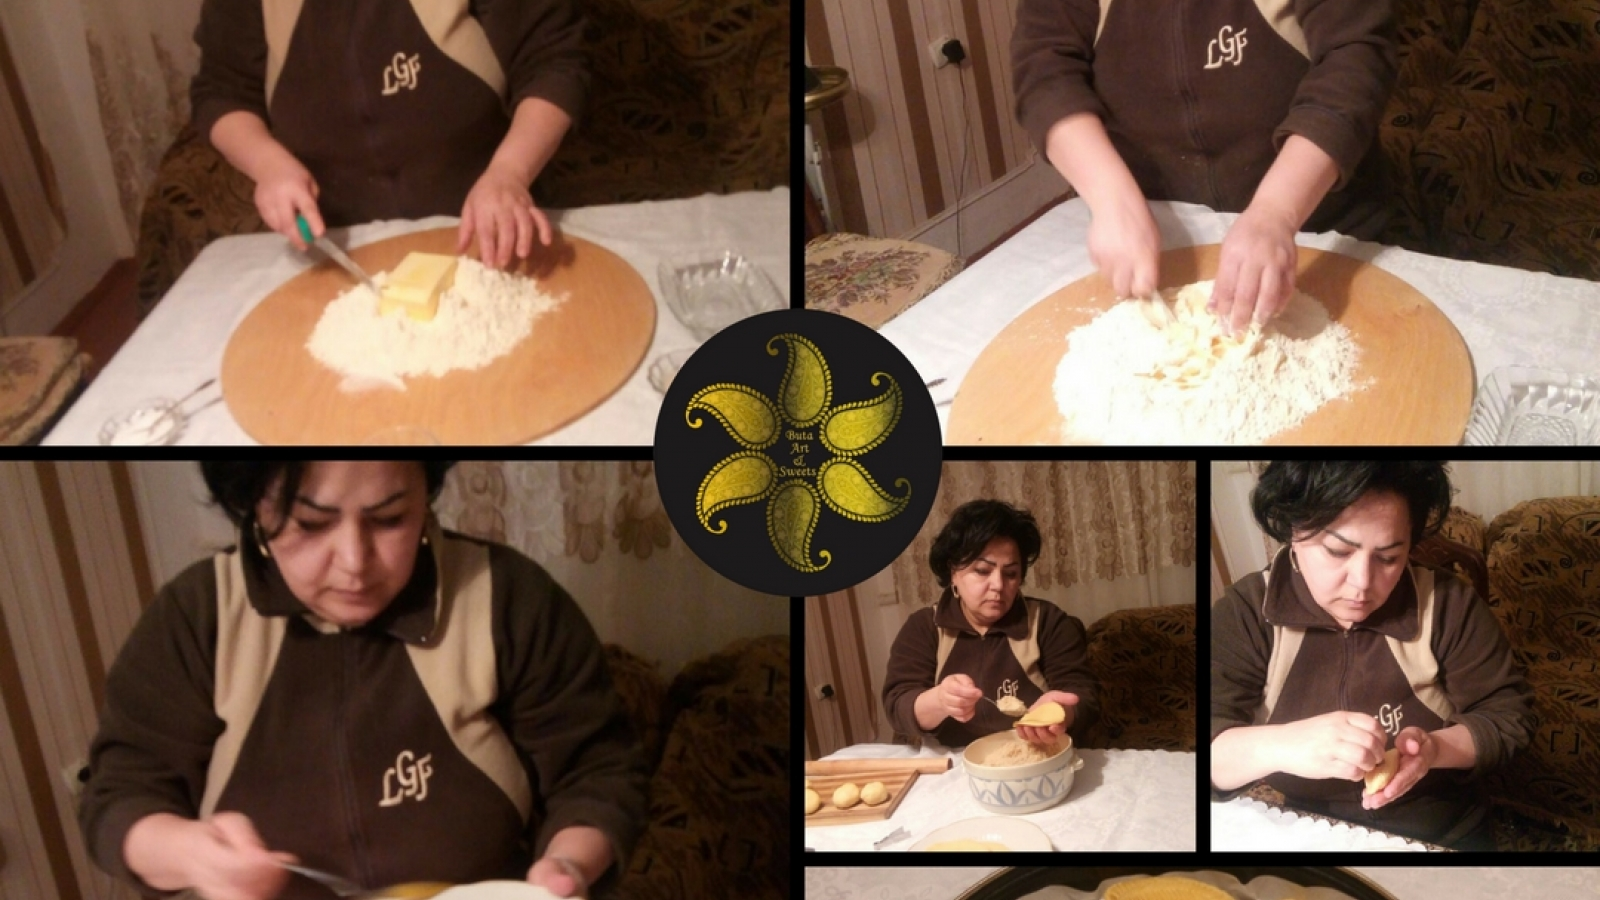 Sara organised an online platform in Baku selling traditional Azerbaijani desserts. Women with special needs make them at their homes.